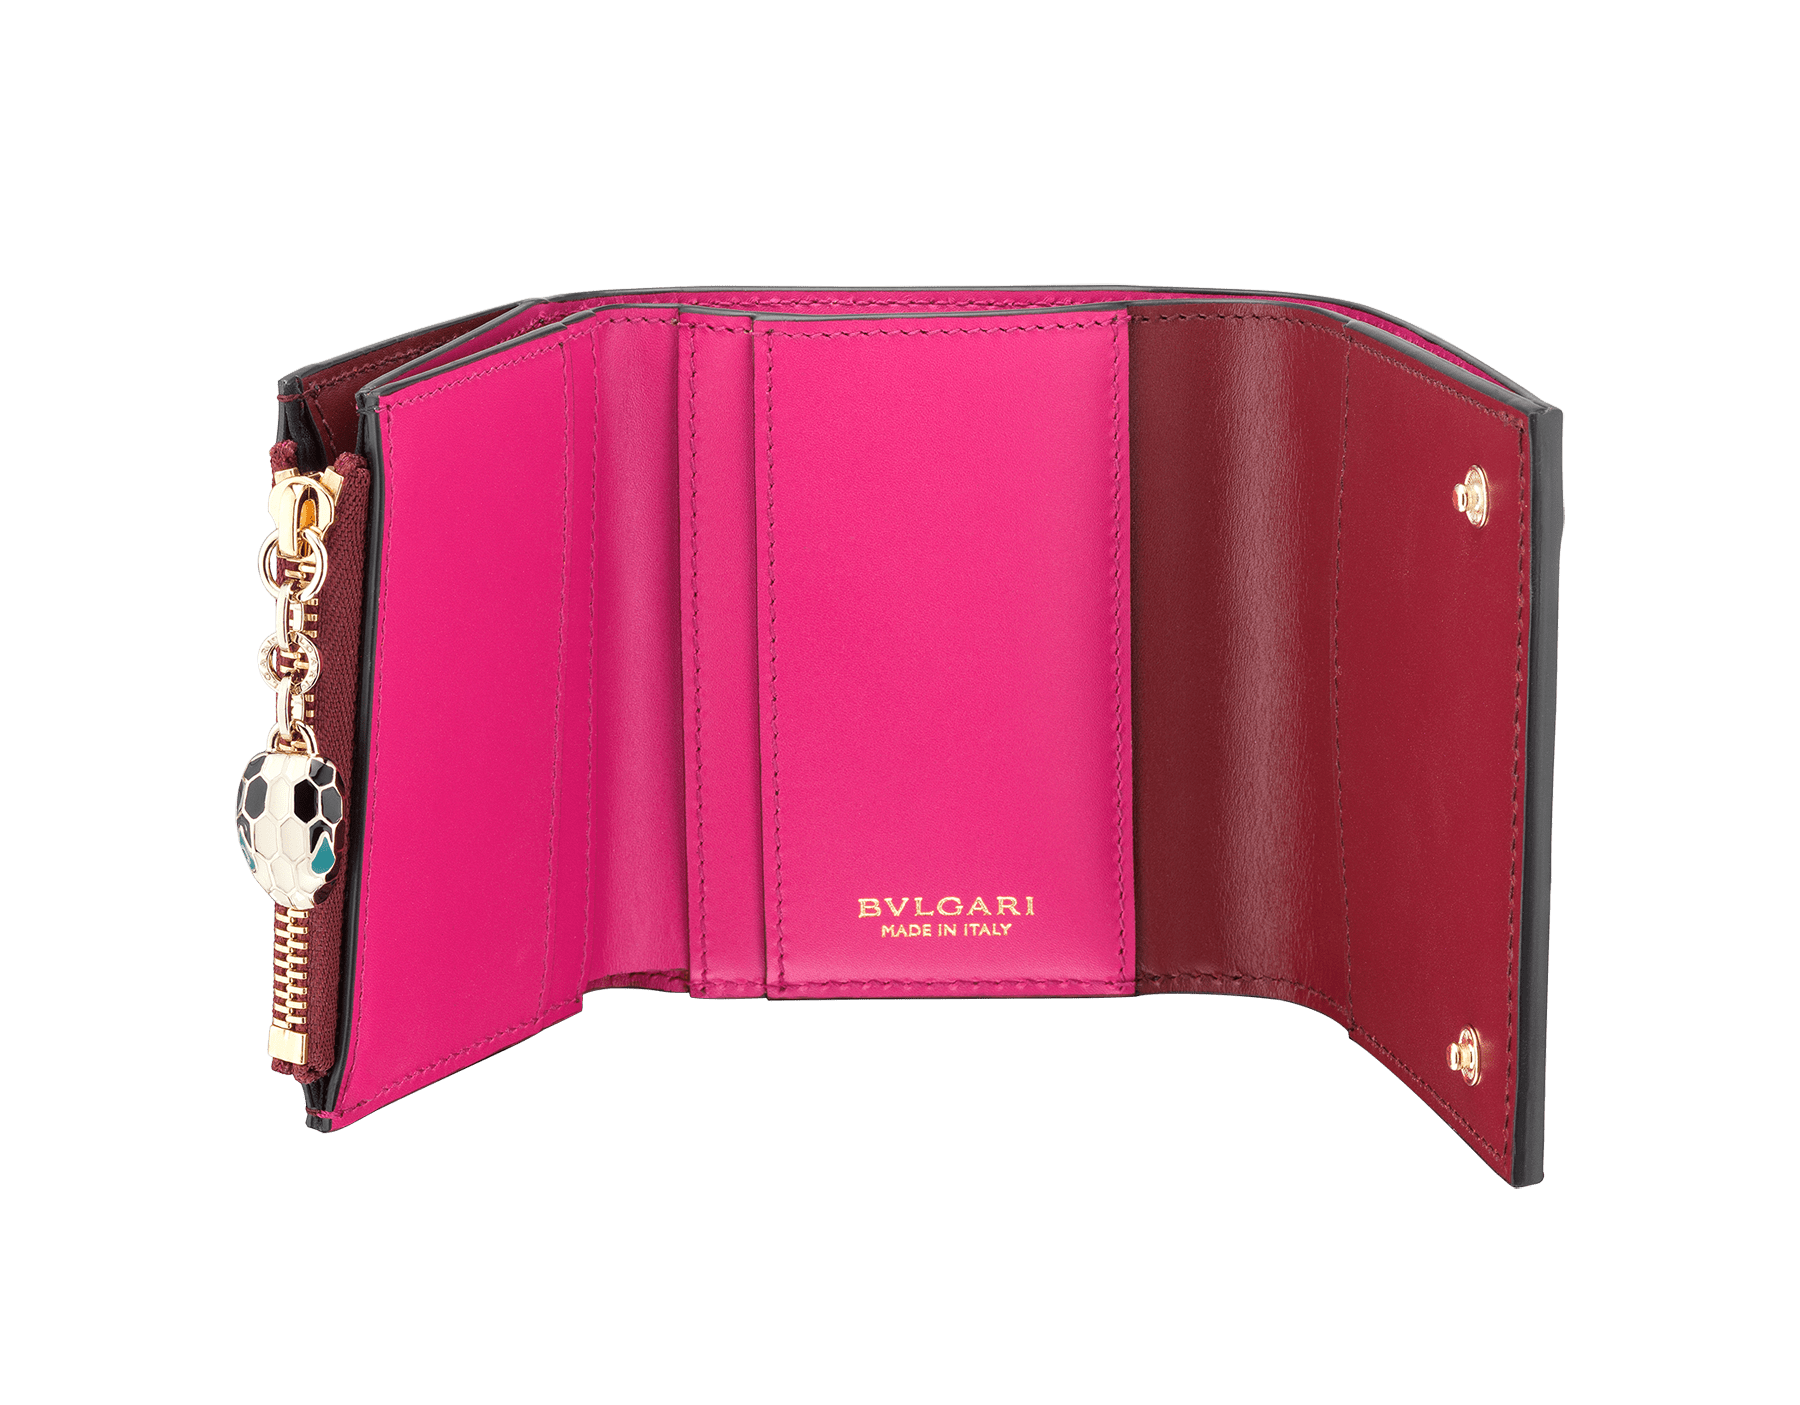 Serpenti Forever super compact wallet in roman garnet and pink spinel calf leather. Iconic snakehead zip puller in black and white enamel, with green malachite enamel eyes. 288036 image 2